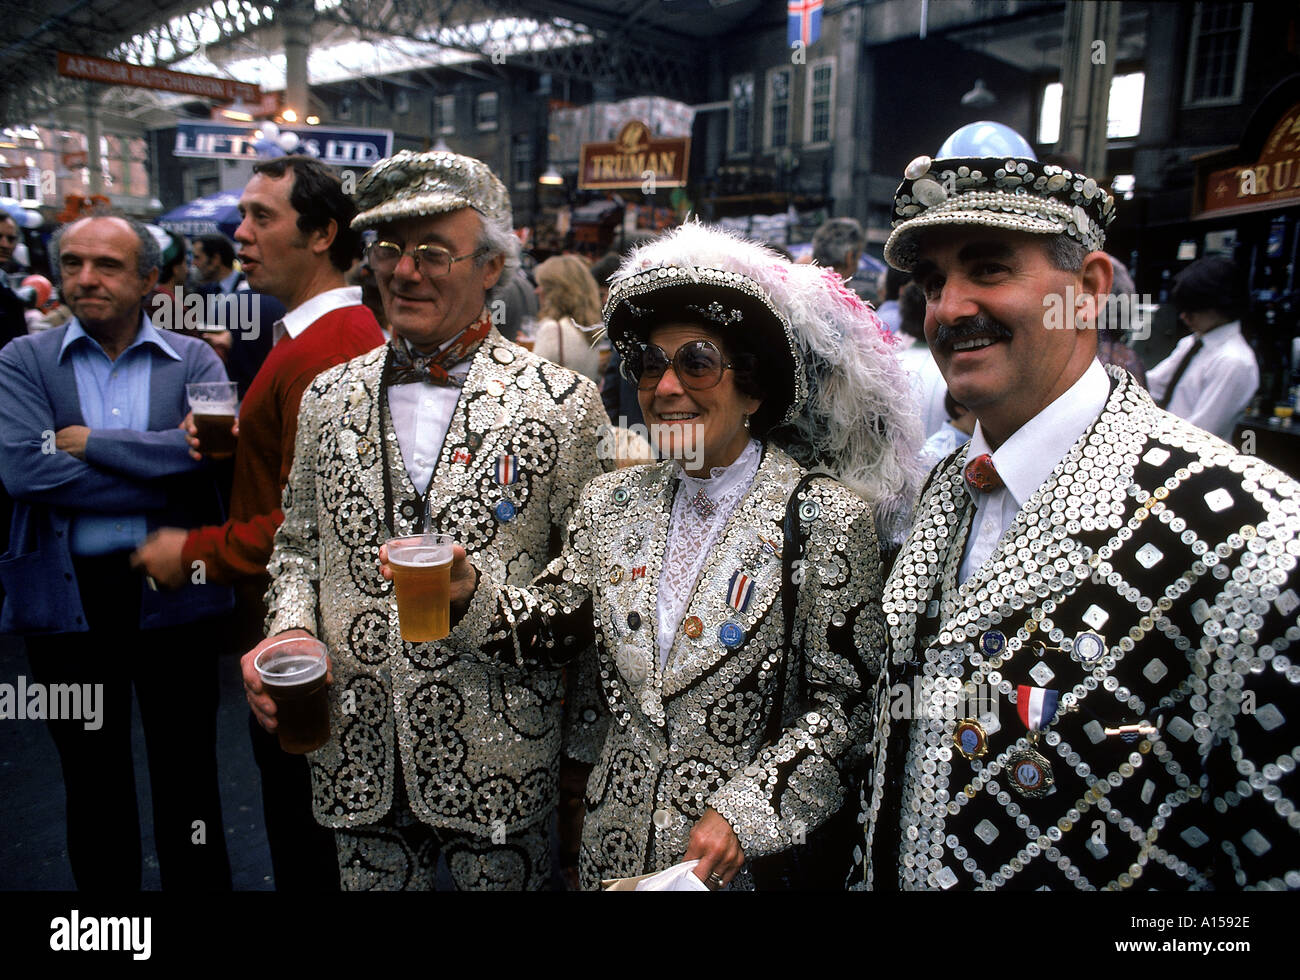 Pearly Kings Queens England UK A Woolfitt - Stock Image